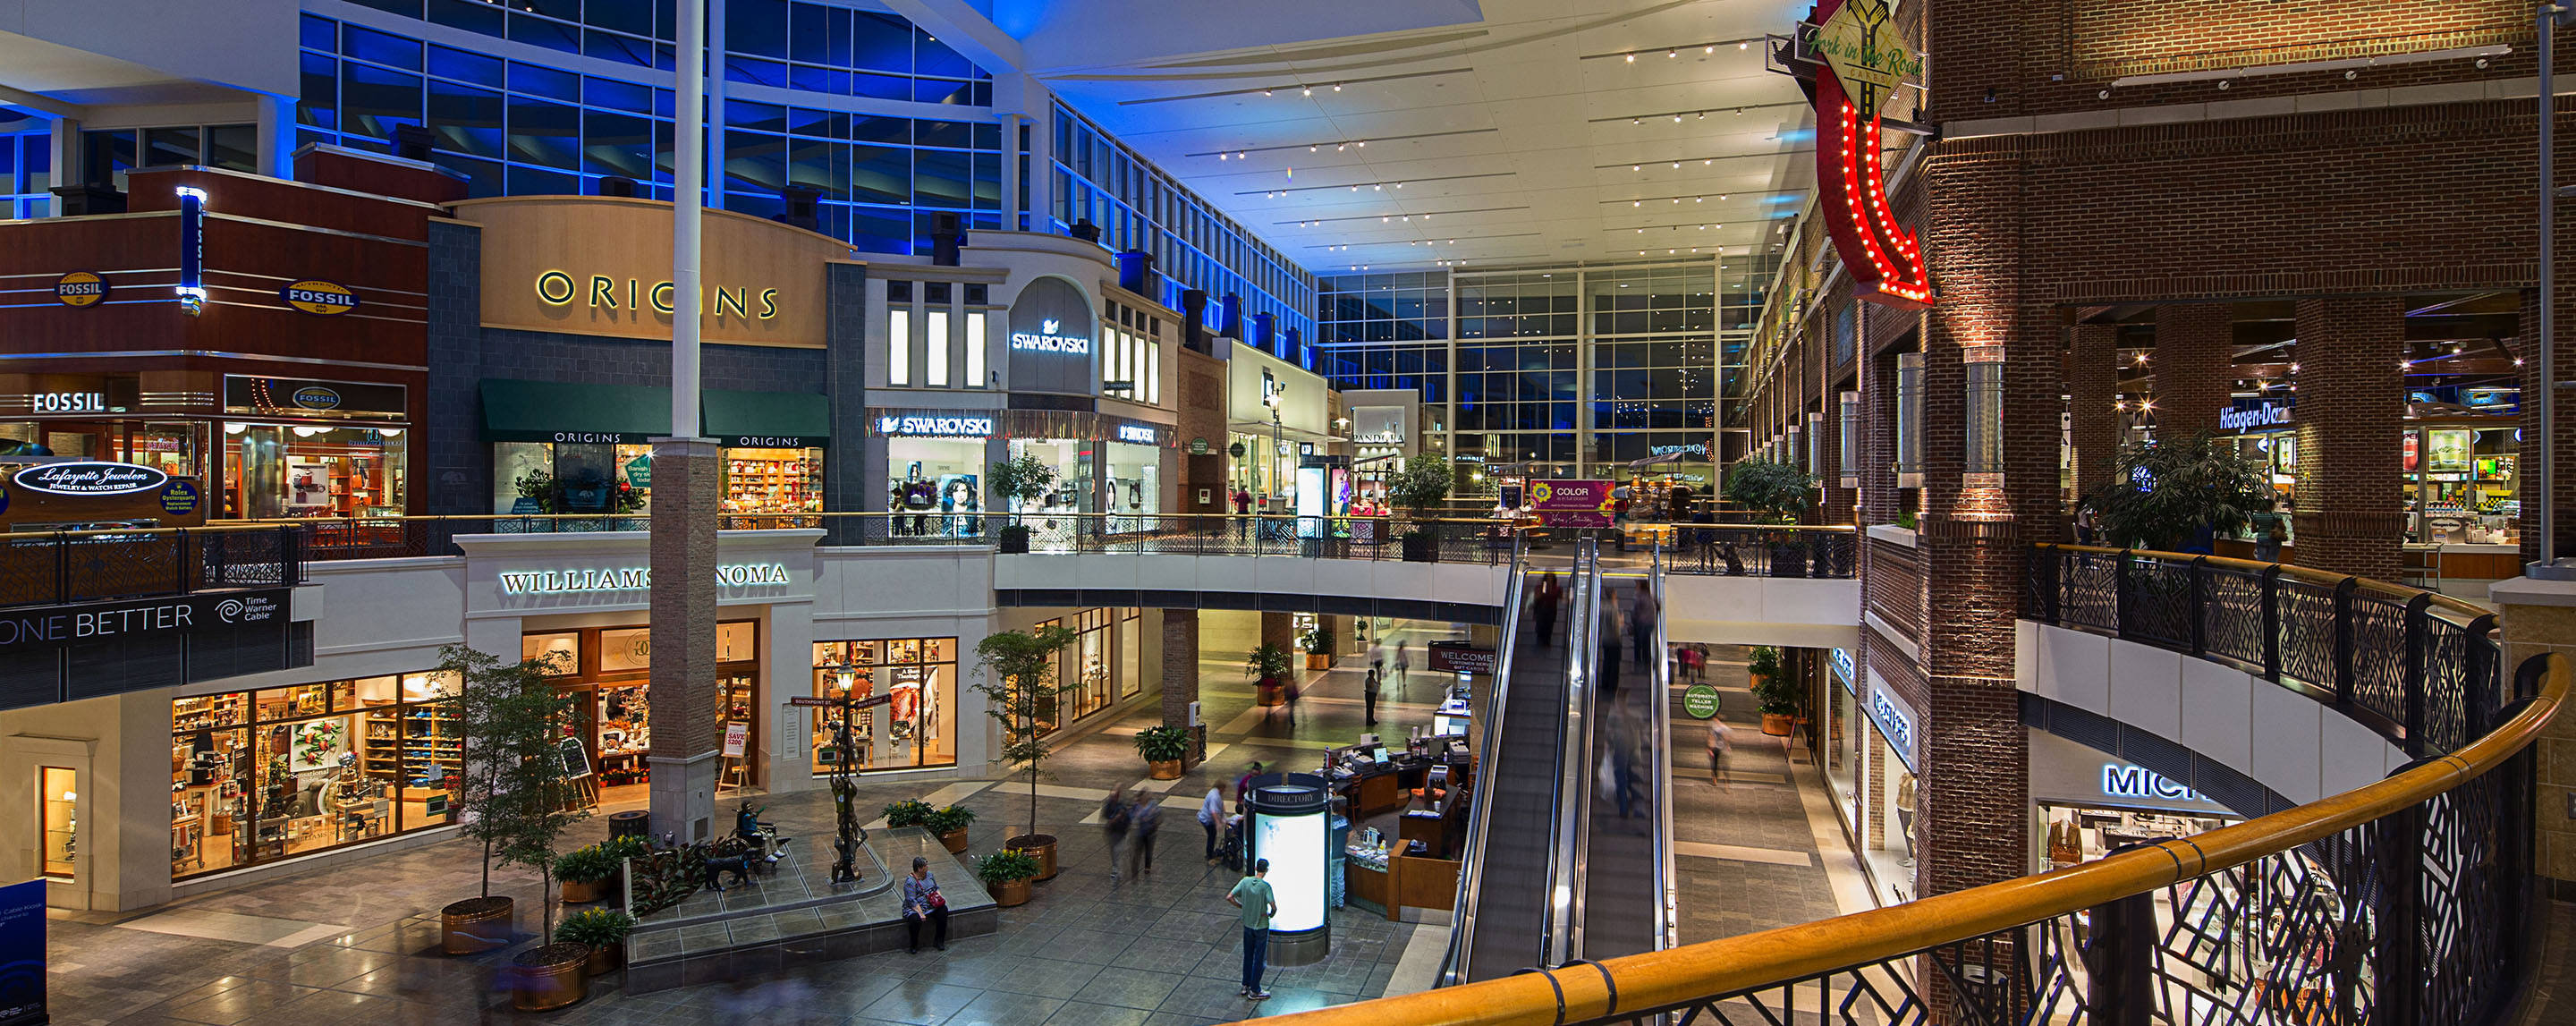 A windowed shopping center with escalators hosts a Fossil, Origins, Swarovski and a Jewelry repair store.